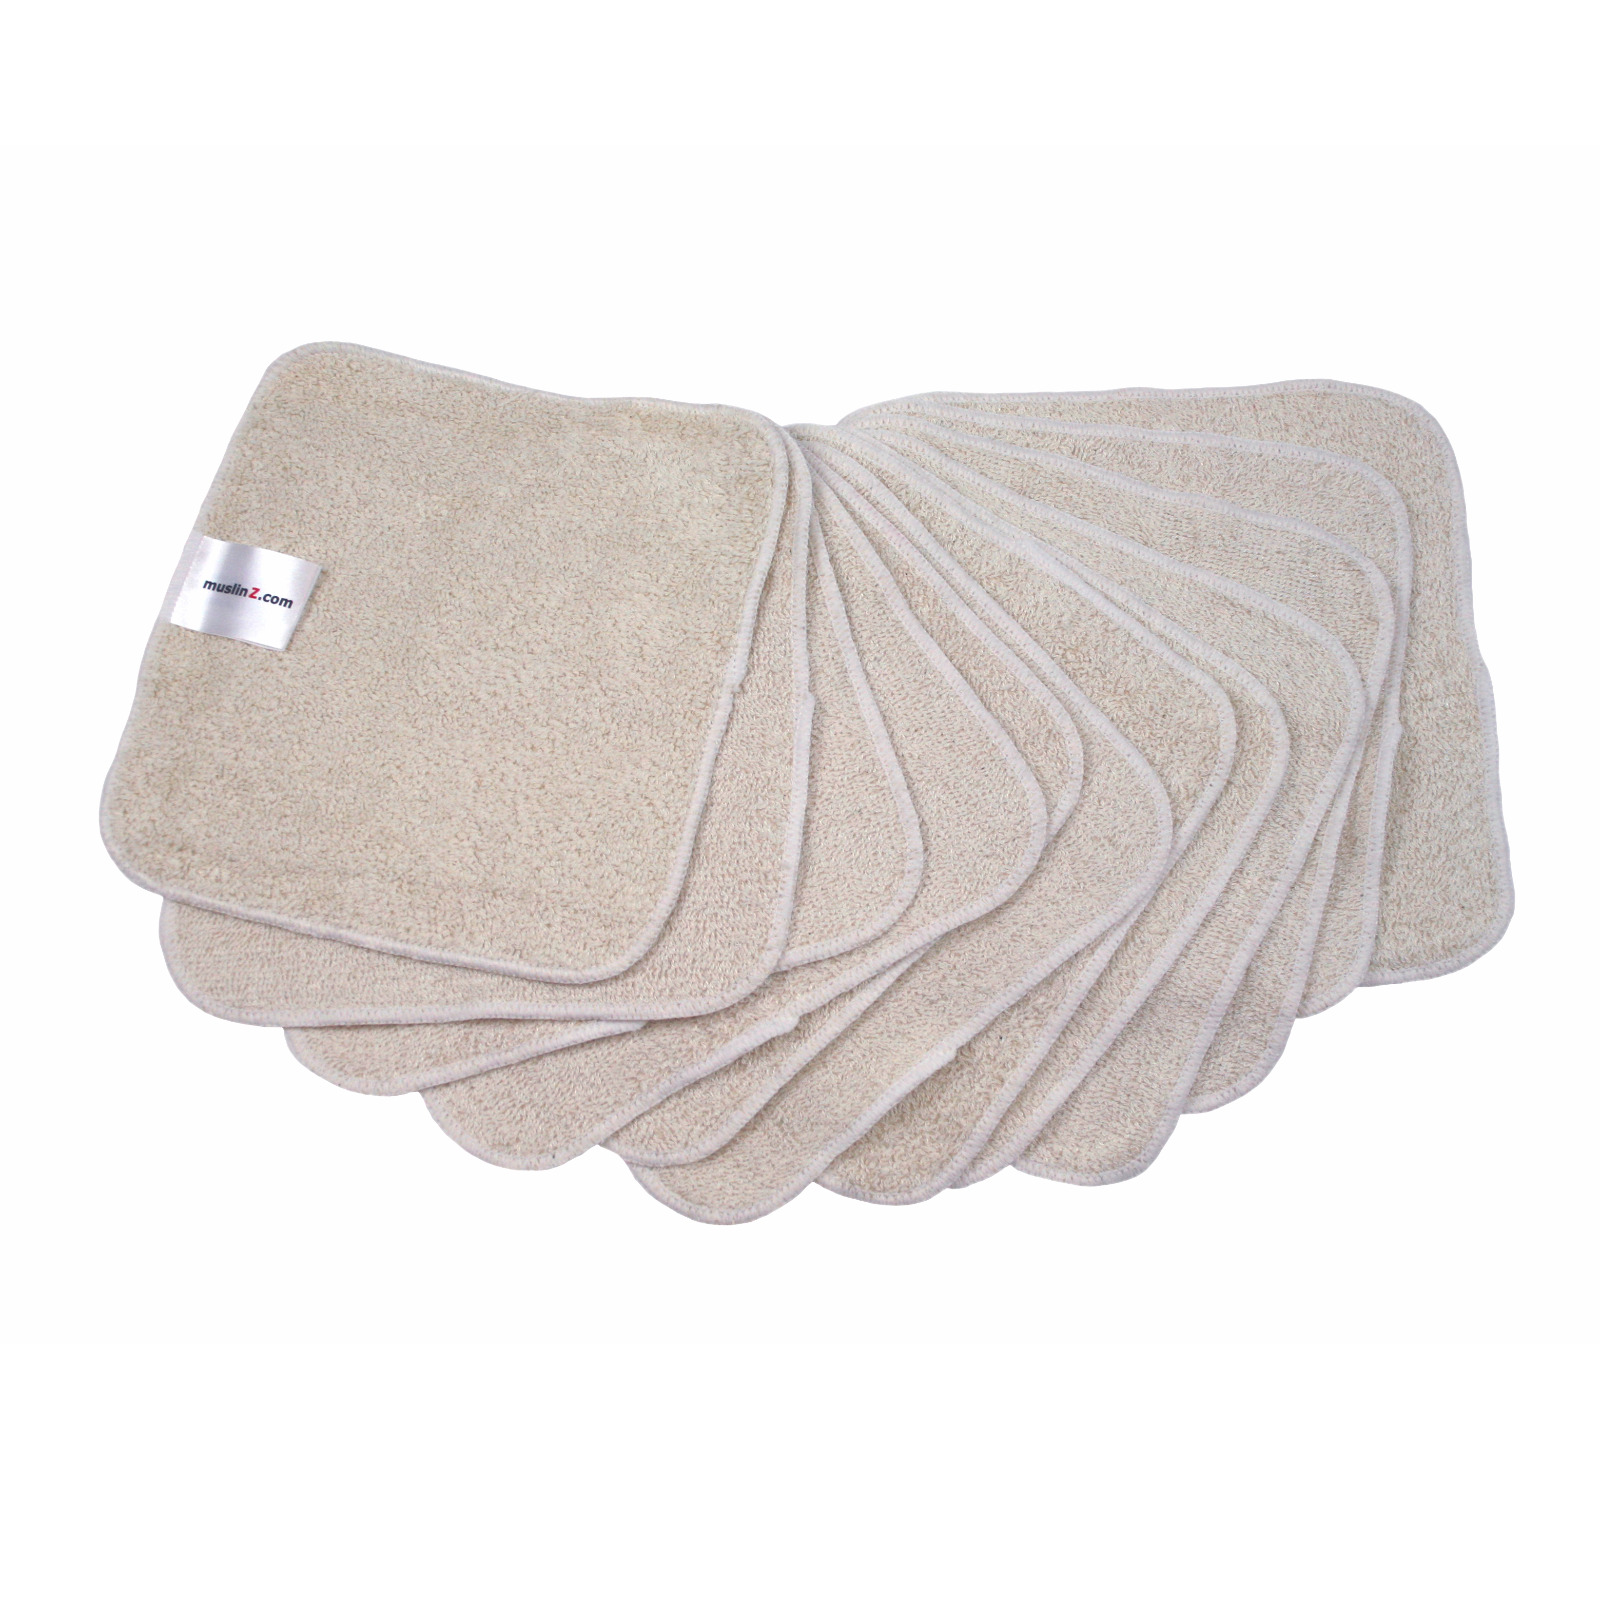 MuslinZ 12PK Washable Reusable Wipes 20x20cm Bamboo/Organic Cotton Unbleached